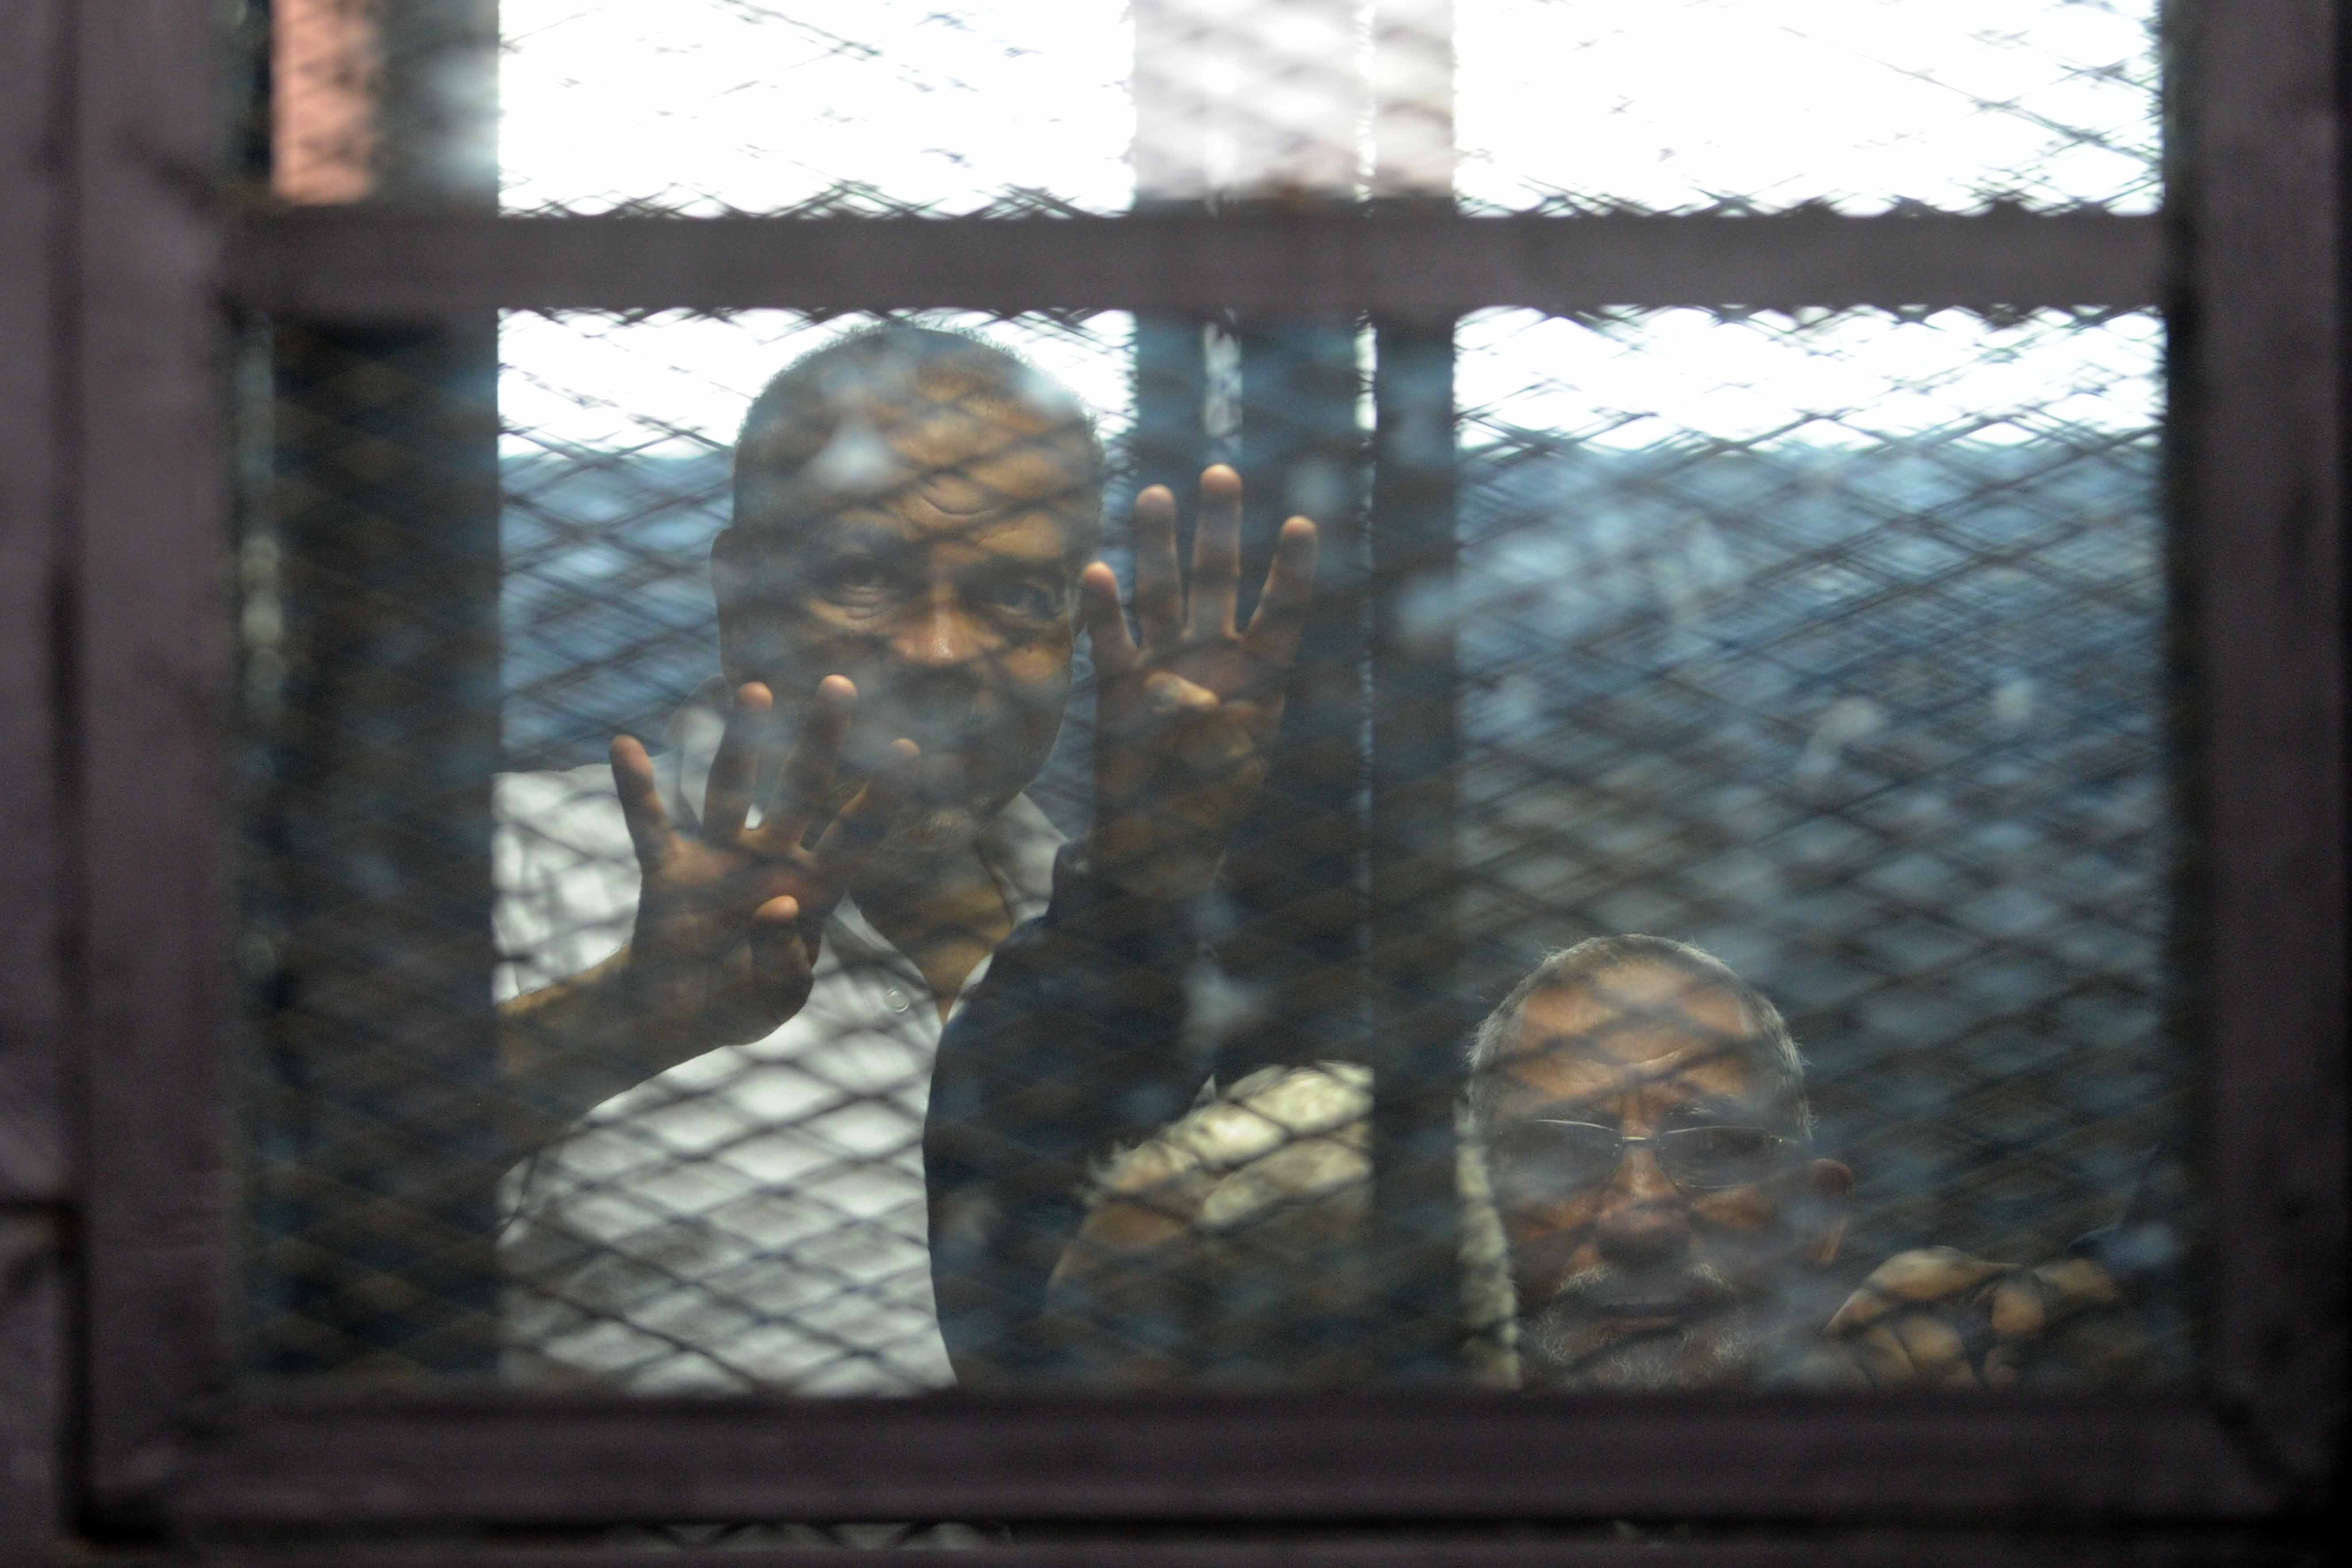 The trial of leading Muslim Brotherhood figures, including Supreme Guide Mohamed Badie, for the violence outside the Brotherhood's headquarters in 2013 was postponed on Tuesday to 16 August. (DNE Photo)